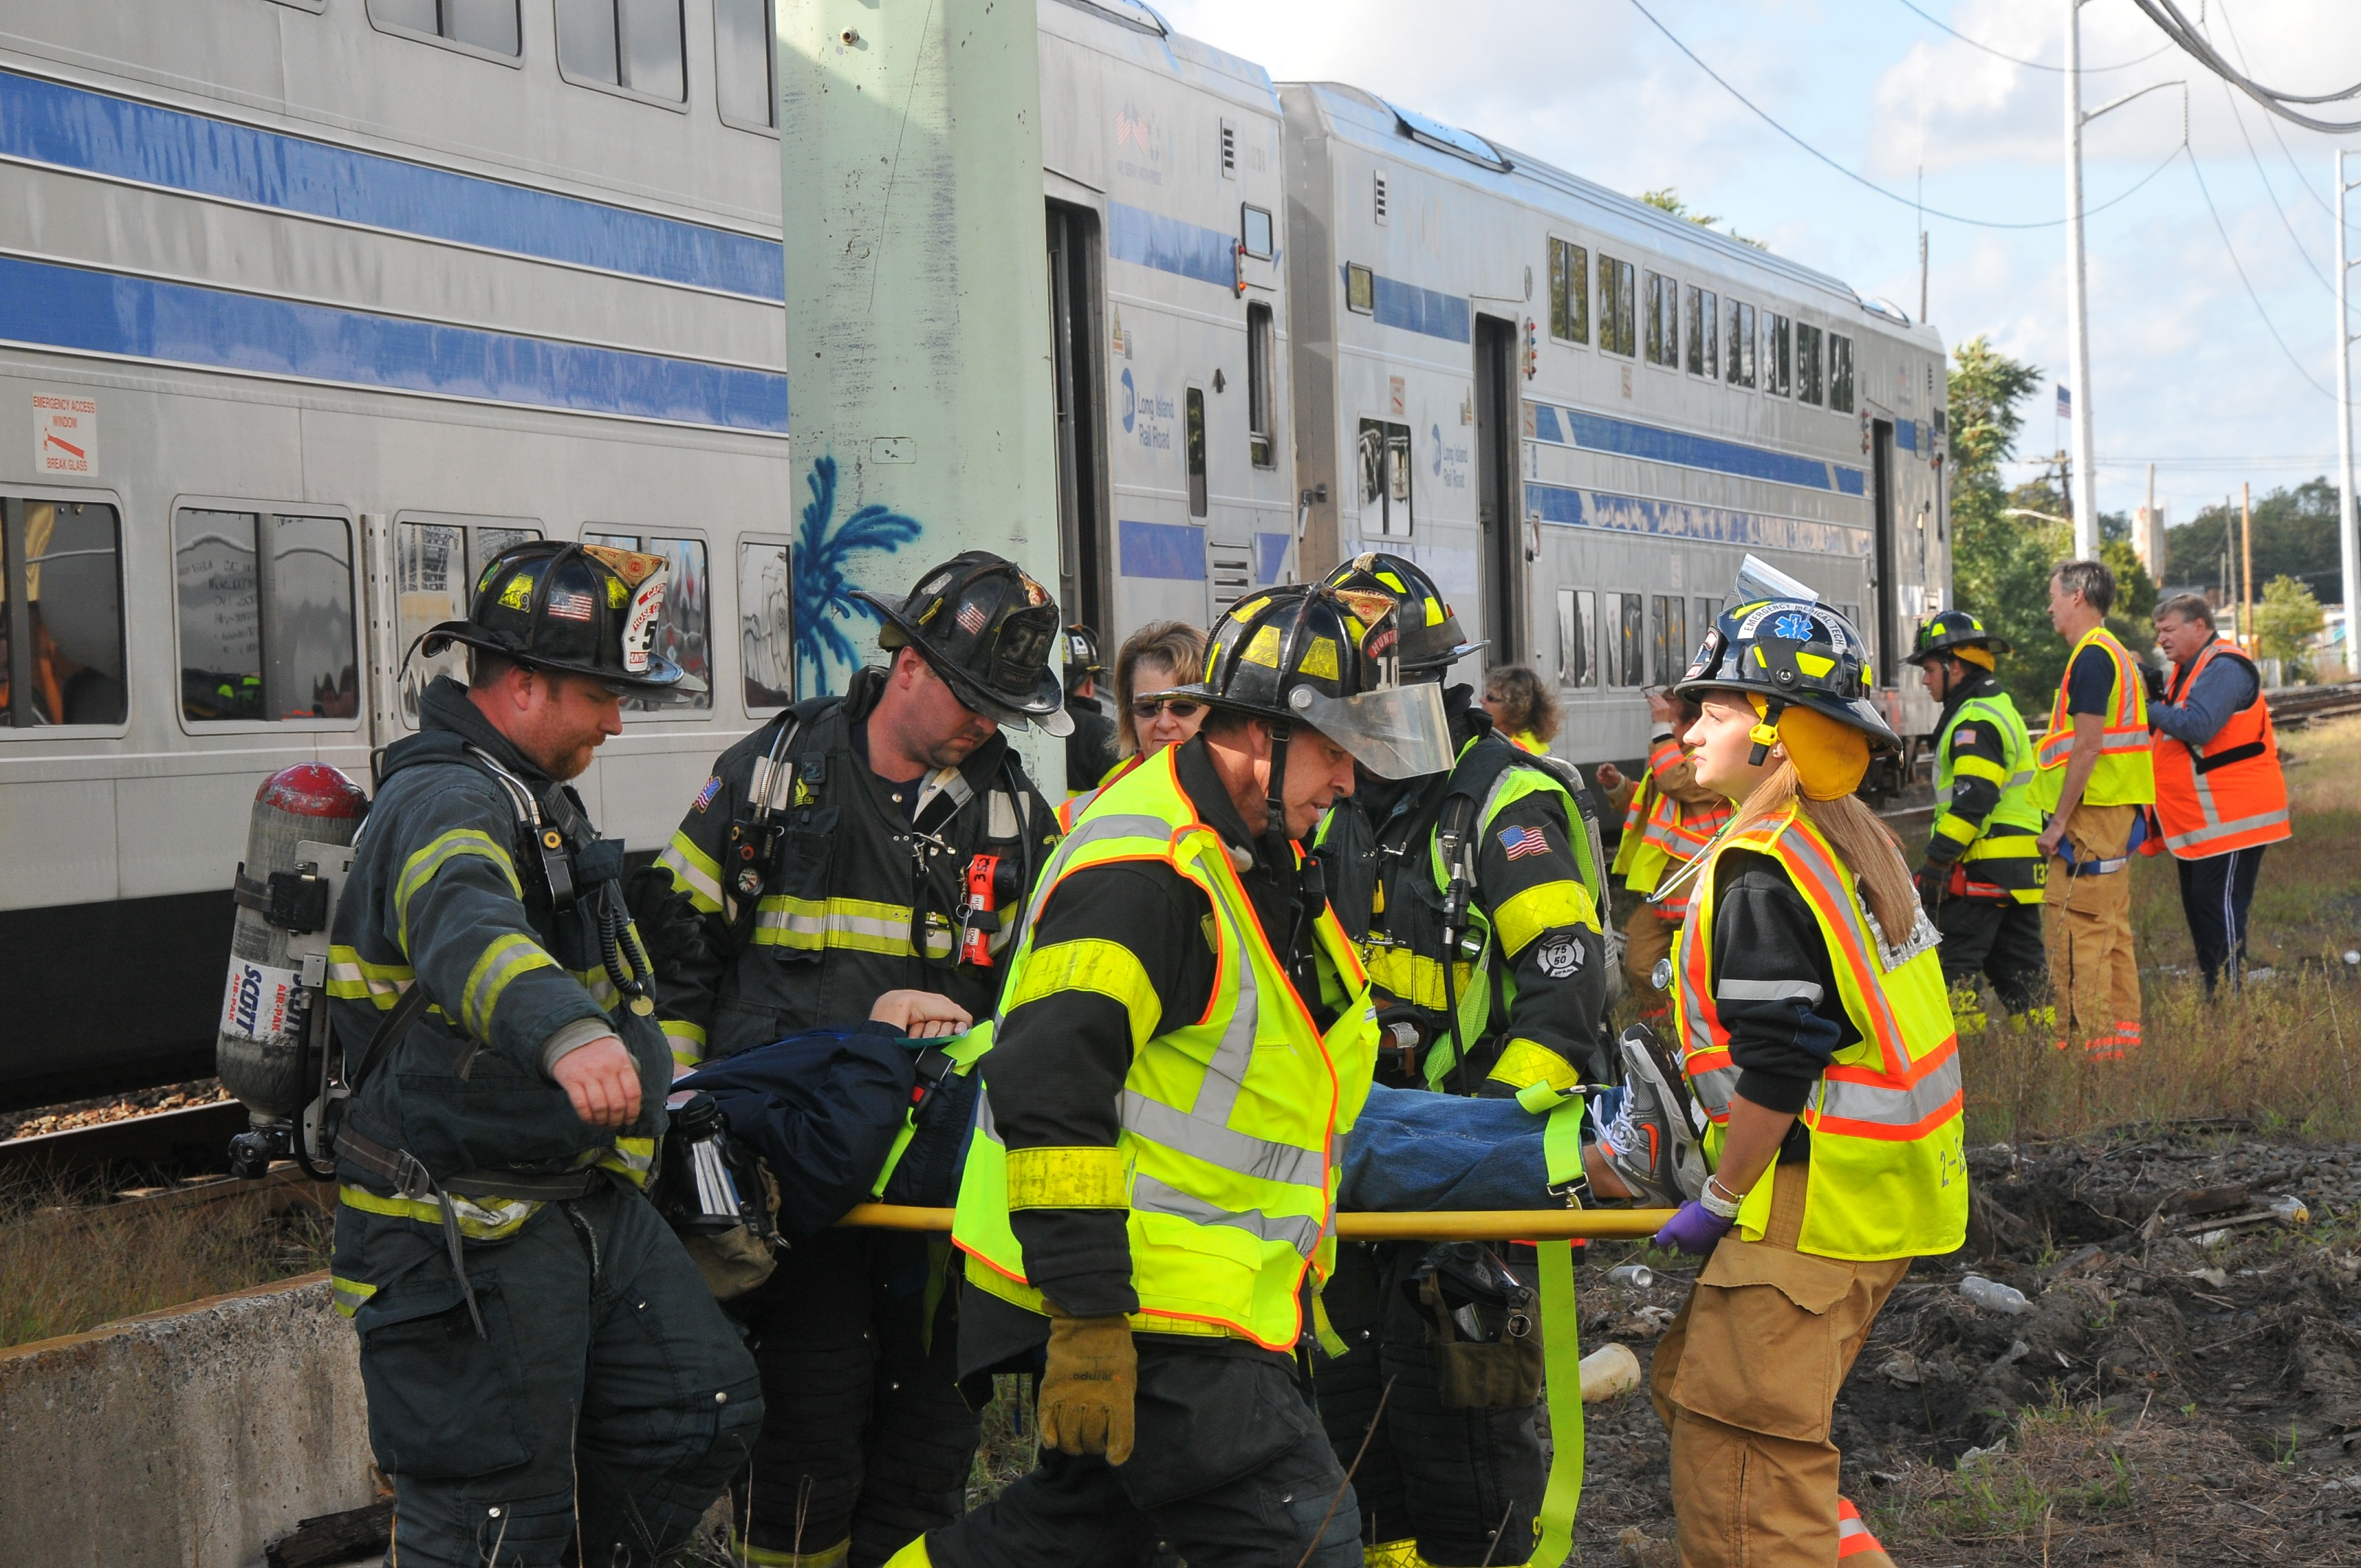 Firefighters Ems Hold Lirr Emergency Response Drill